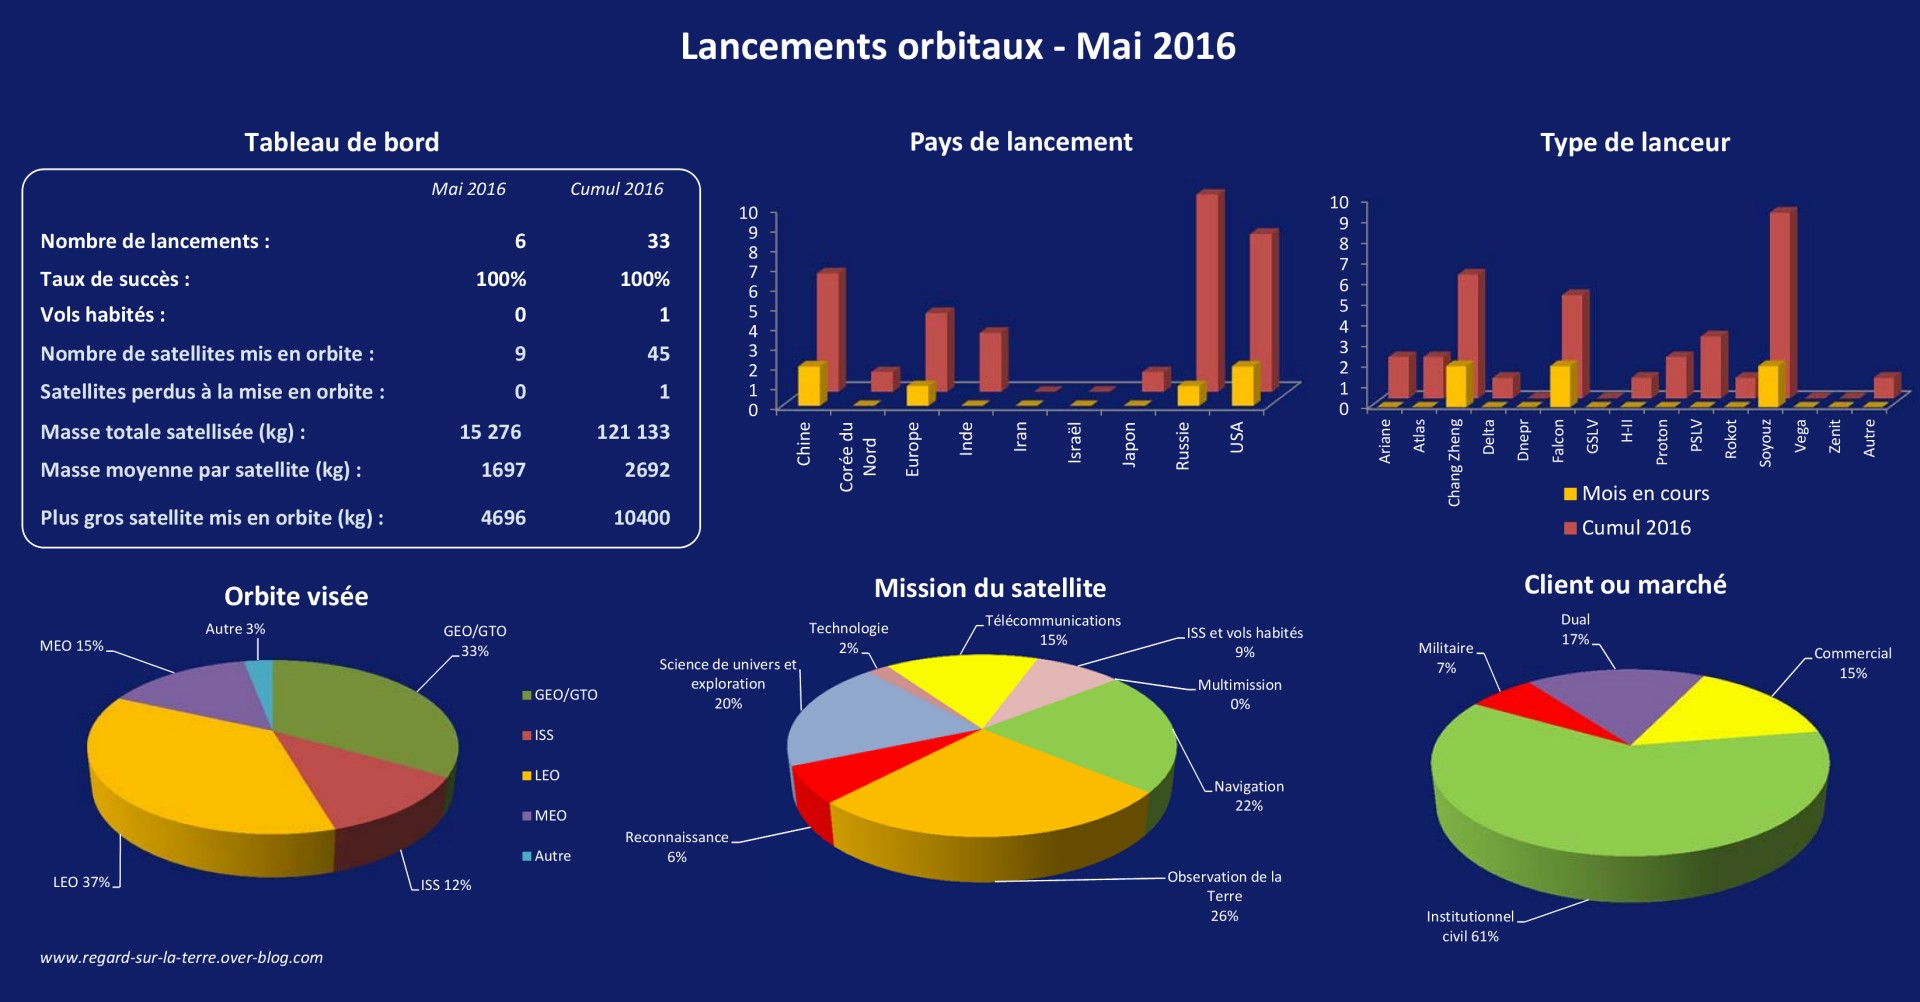 Bilan des lancements - lancements orbitaux - Launch log - Launch record - 2016 - Mai 2016 - Missions - orbites - type de lanceur - pays de lancement